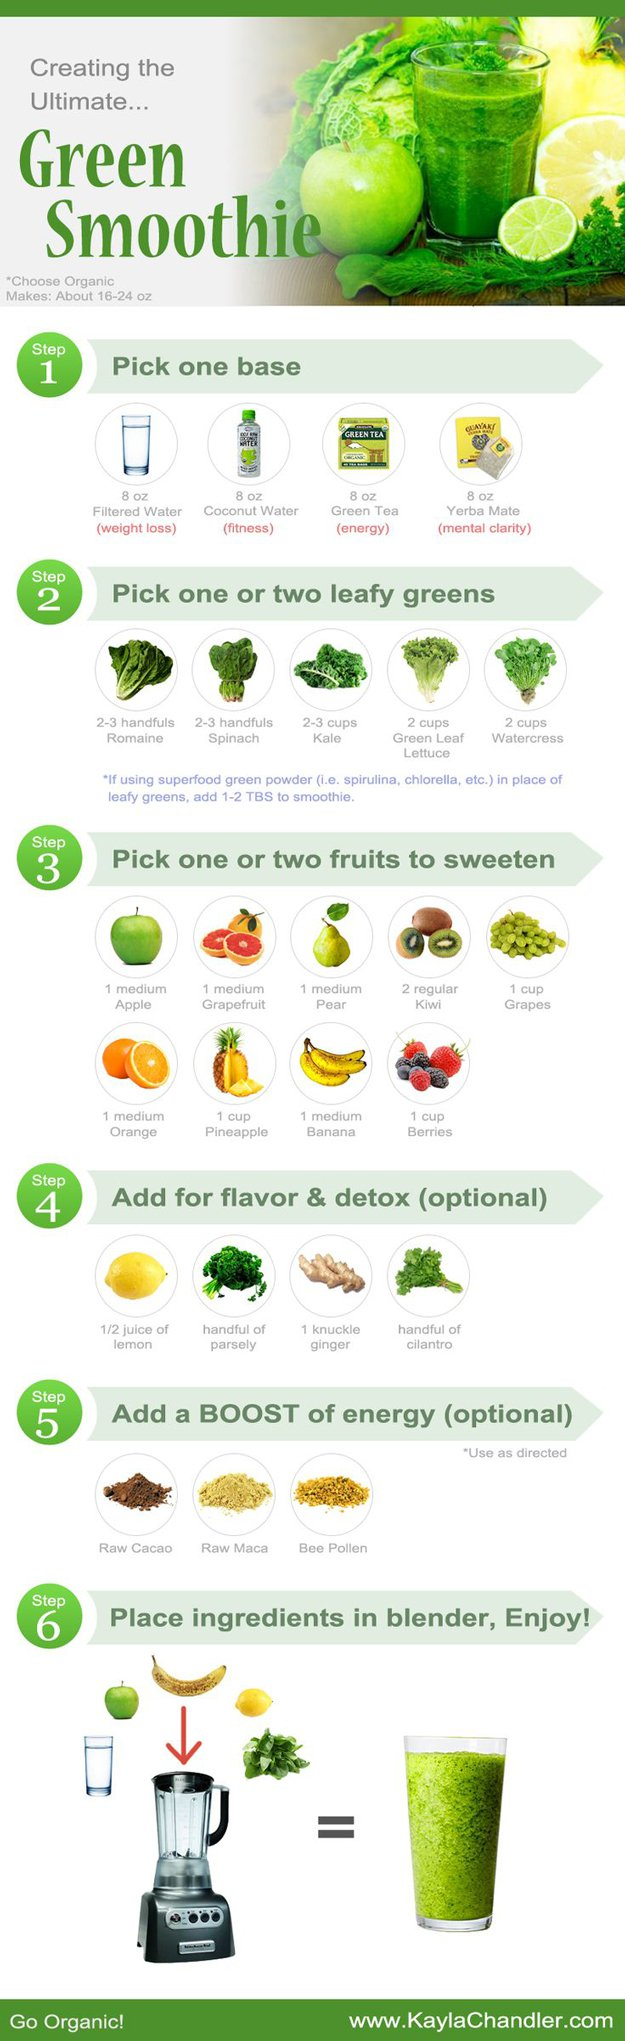 Healthy Green DIY Detox Smoothie Recipe | www.diyprojects.com/13-detox-smoothies-proven-to-boost-your-energy/